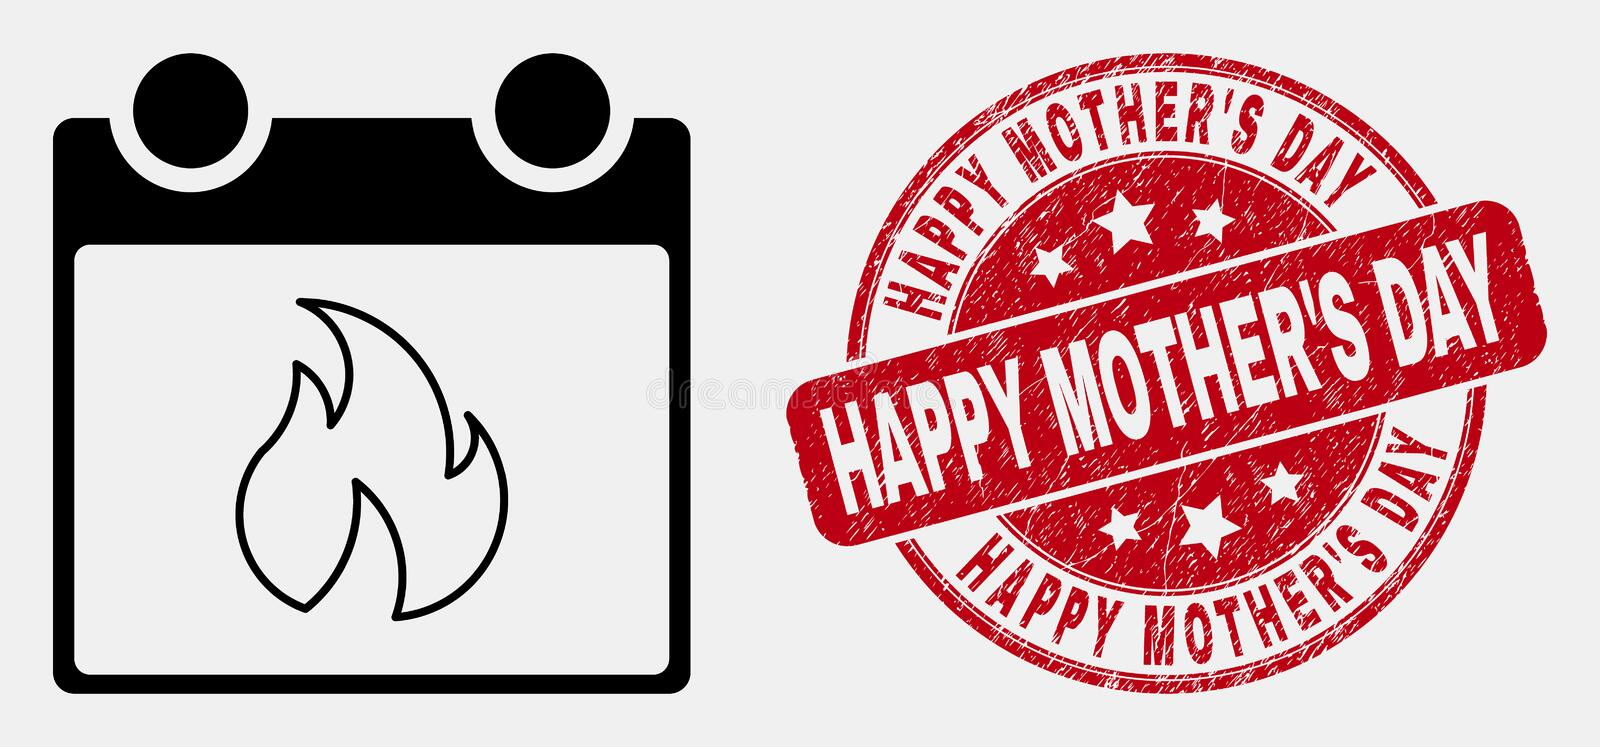 Vector Linear Hot Calendar Leaf Icon and Distress Happy Mother`S Day Stamp royalty free illustration